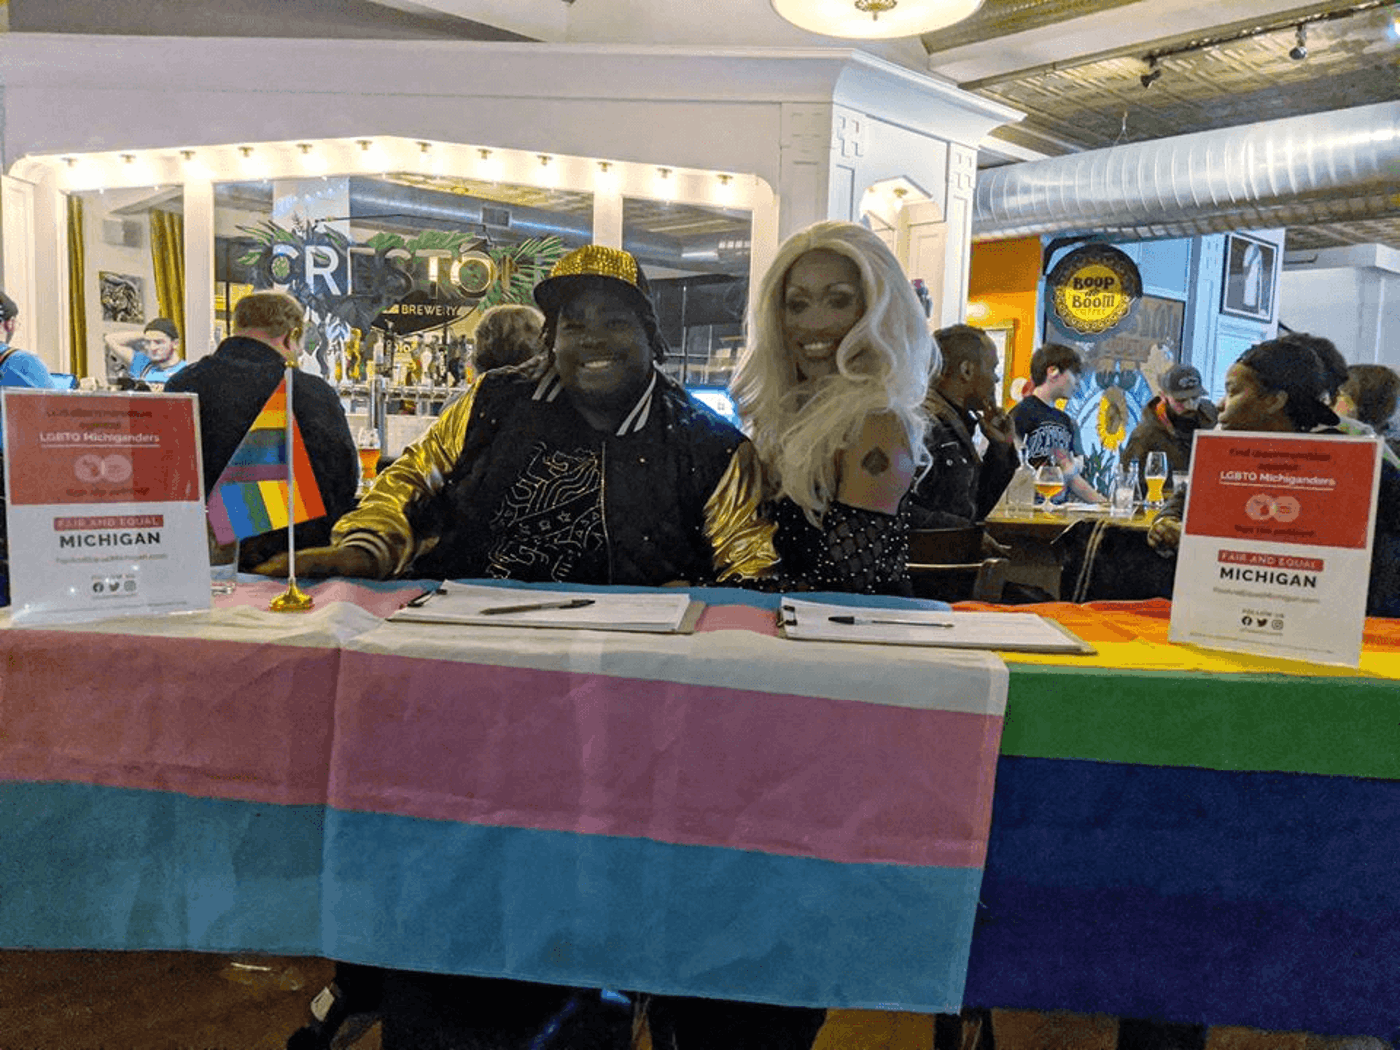 One of the last signature drives before the stay-at-home order went into effect, with Grand Rapids Pride Center. Photo courtesy Fair and Equal Michigan.